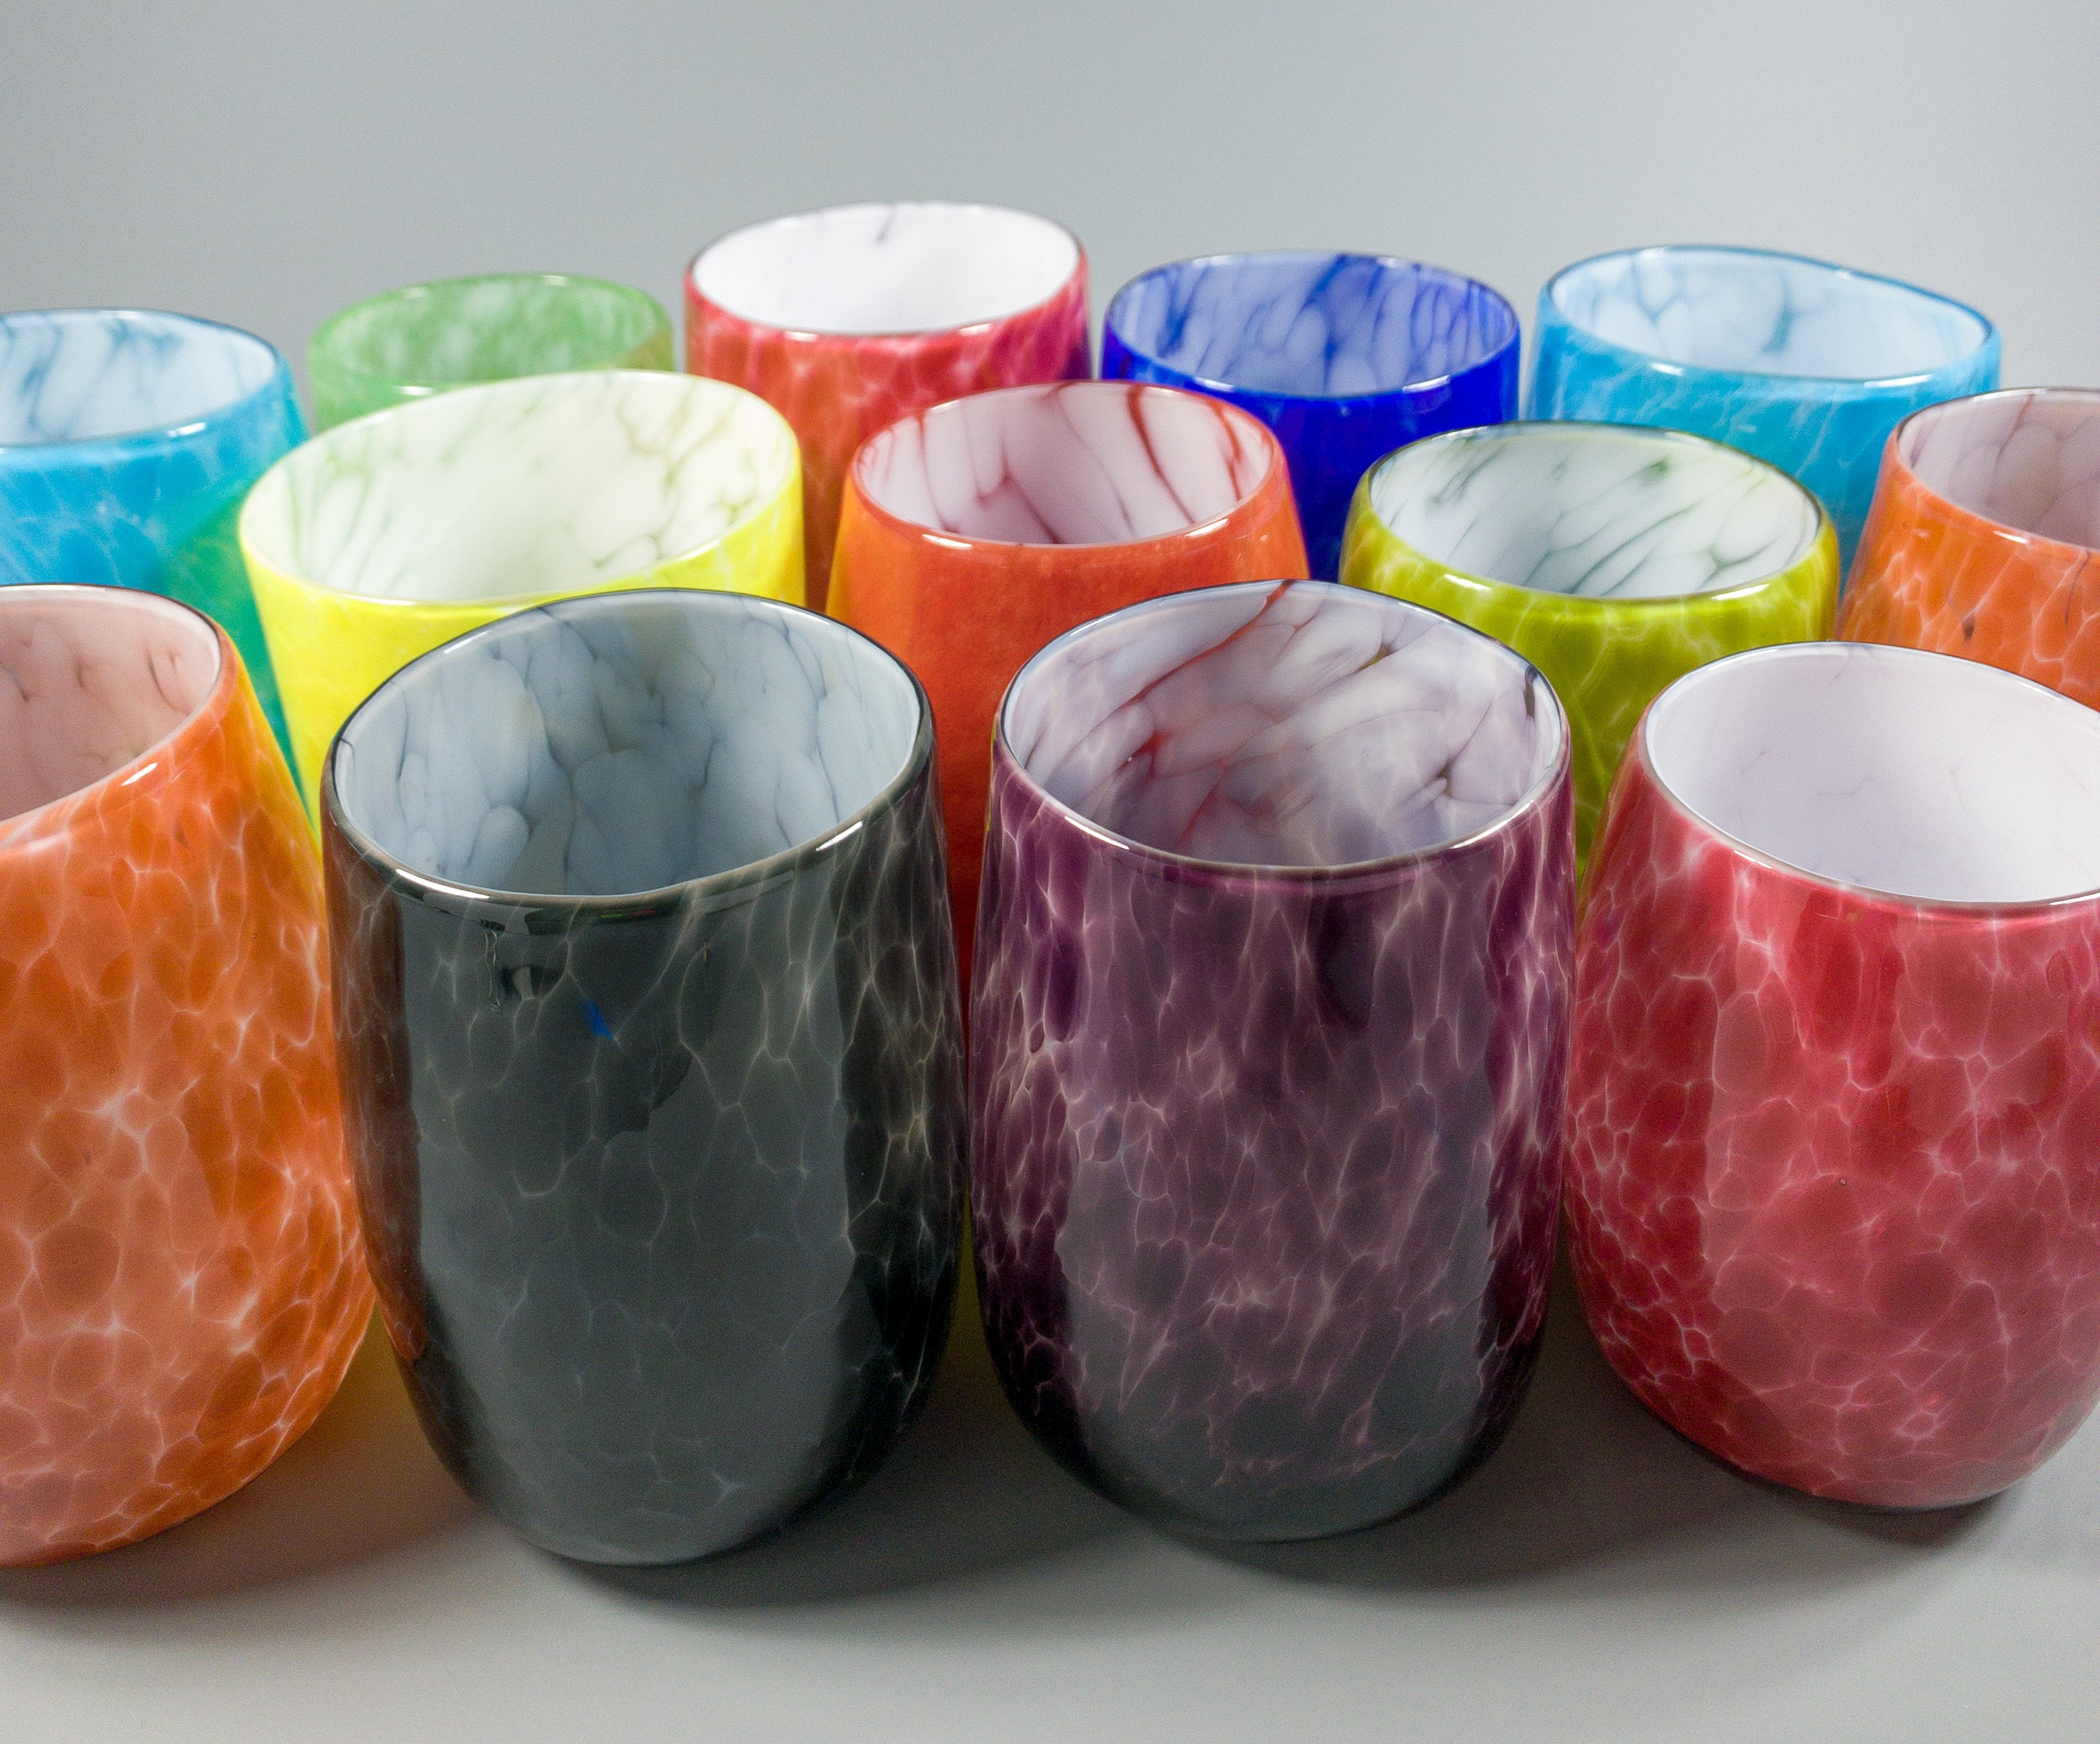 Cheerful Cups: Eggplant